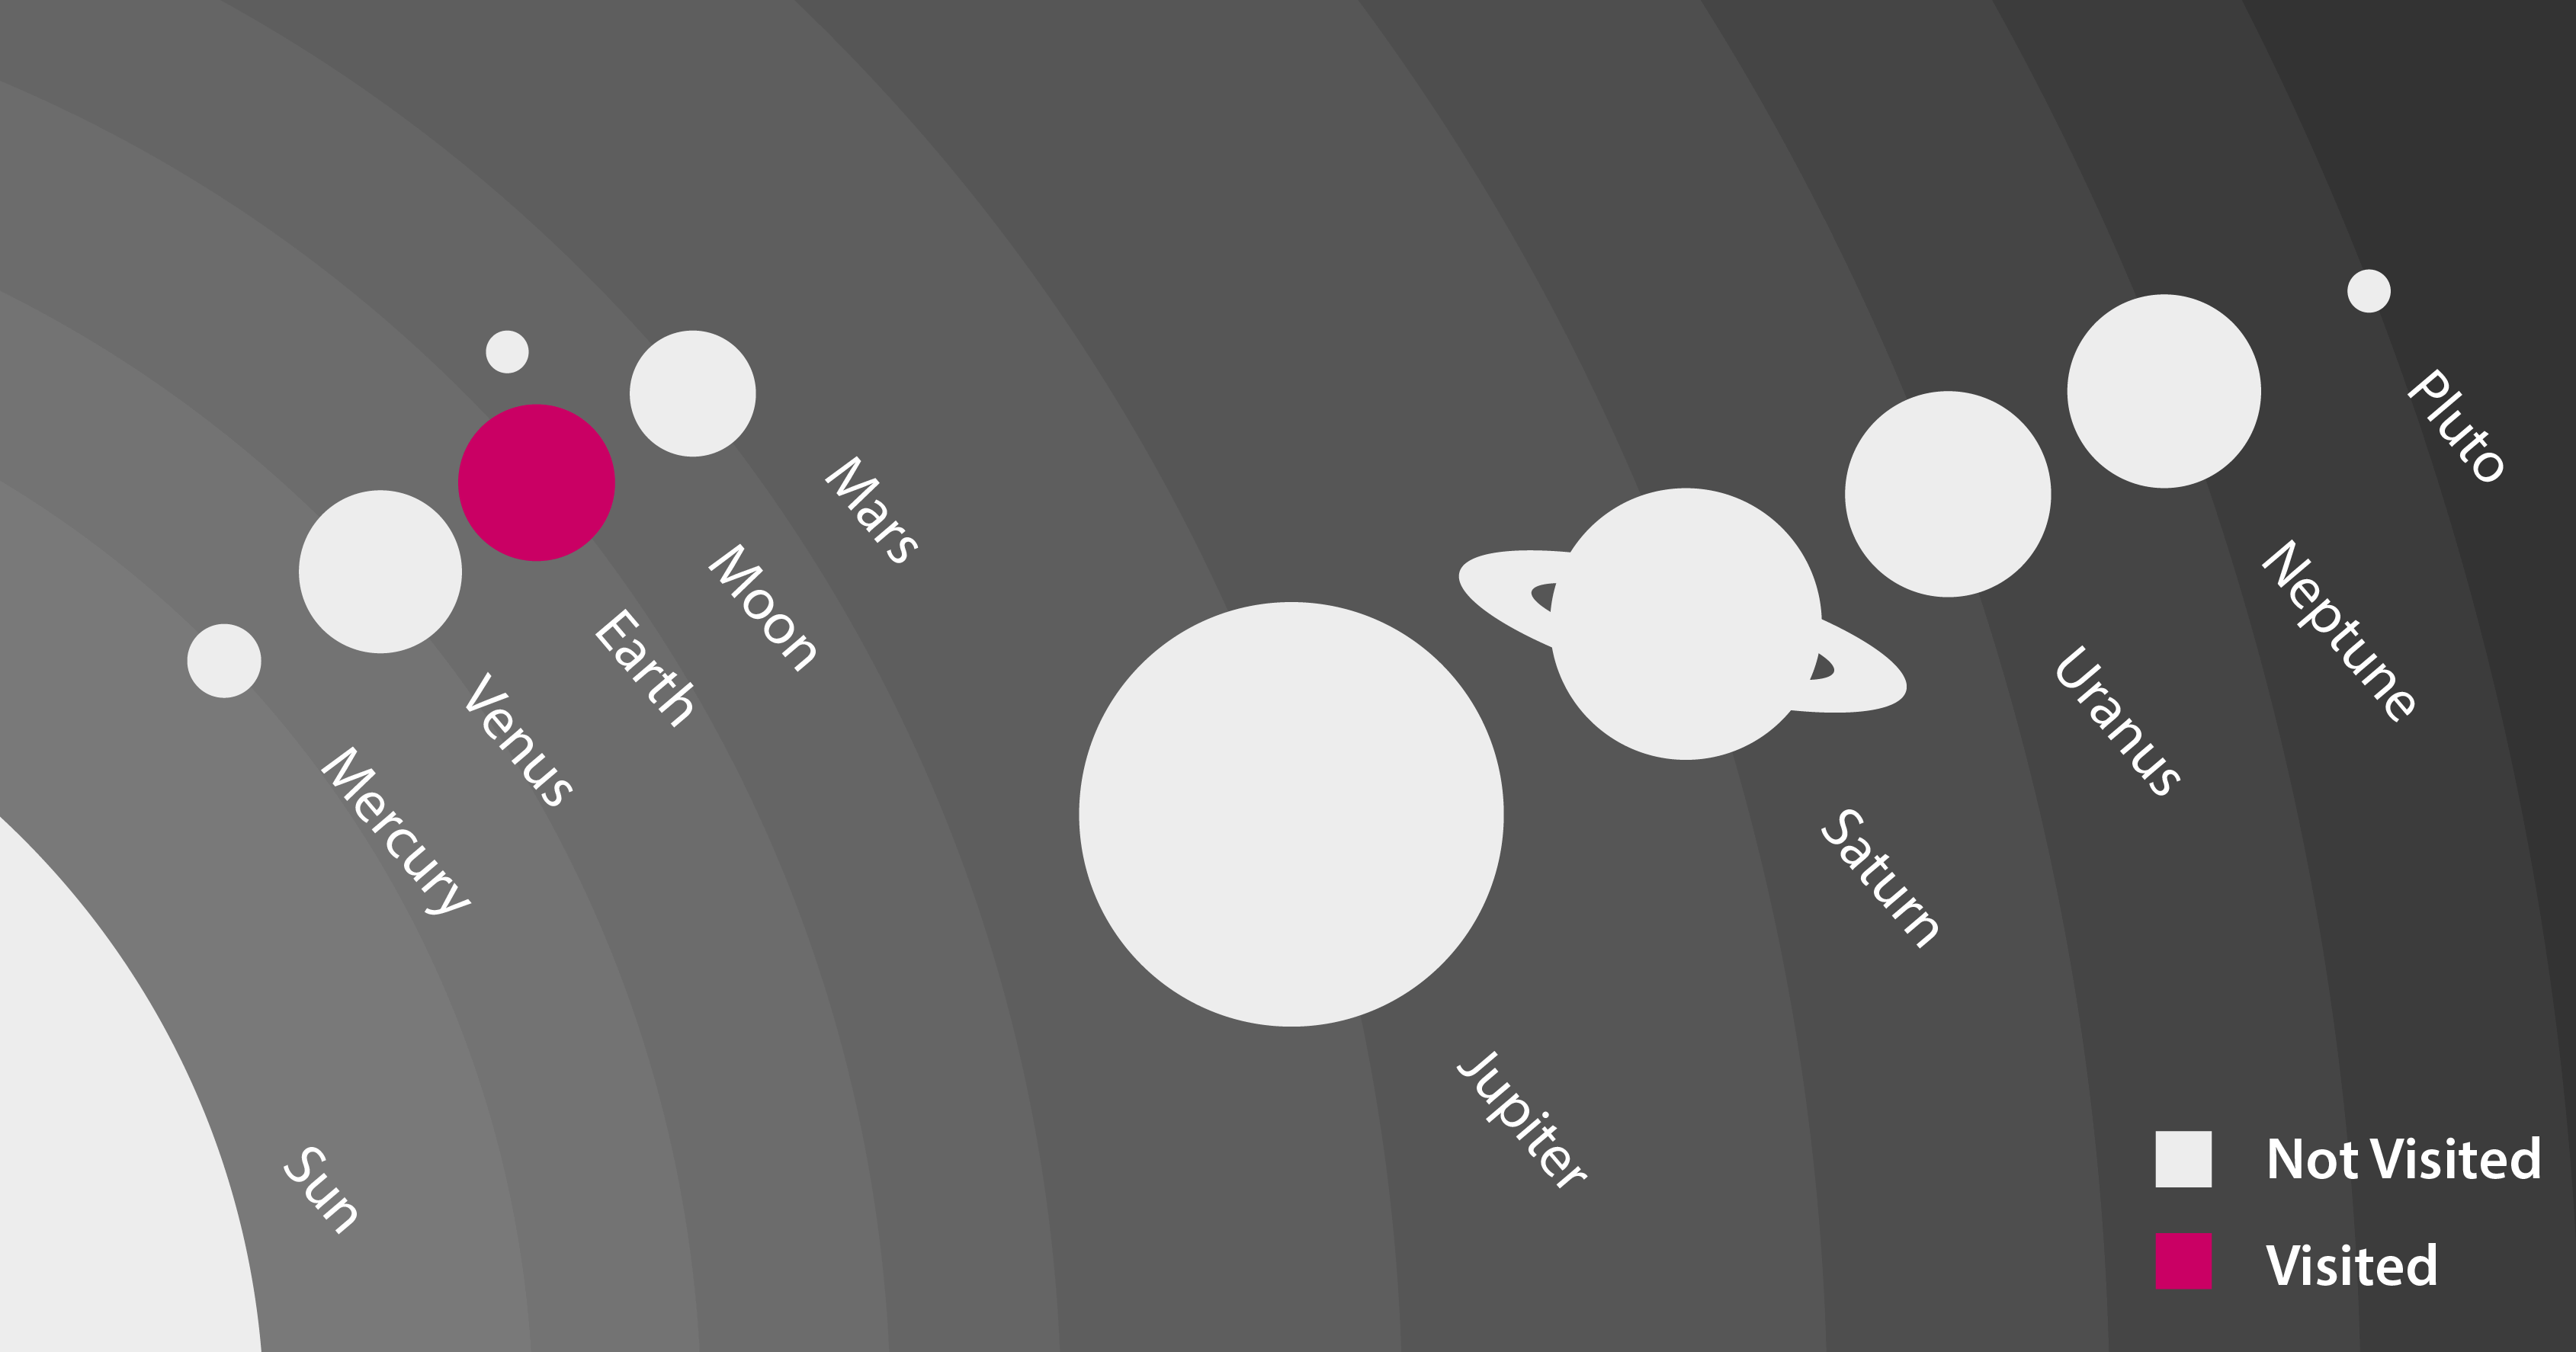 Planets I have visited